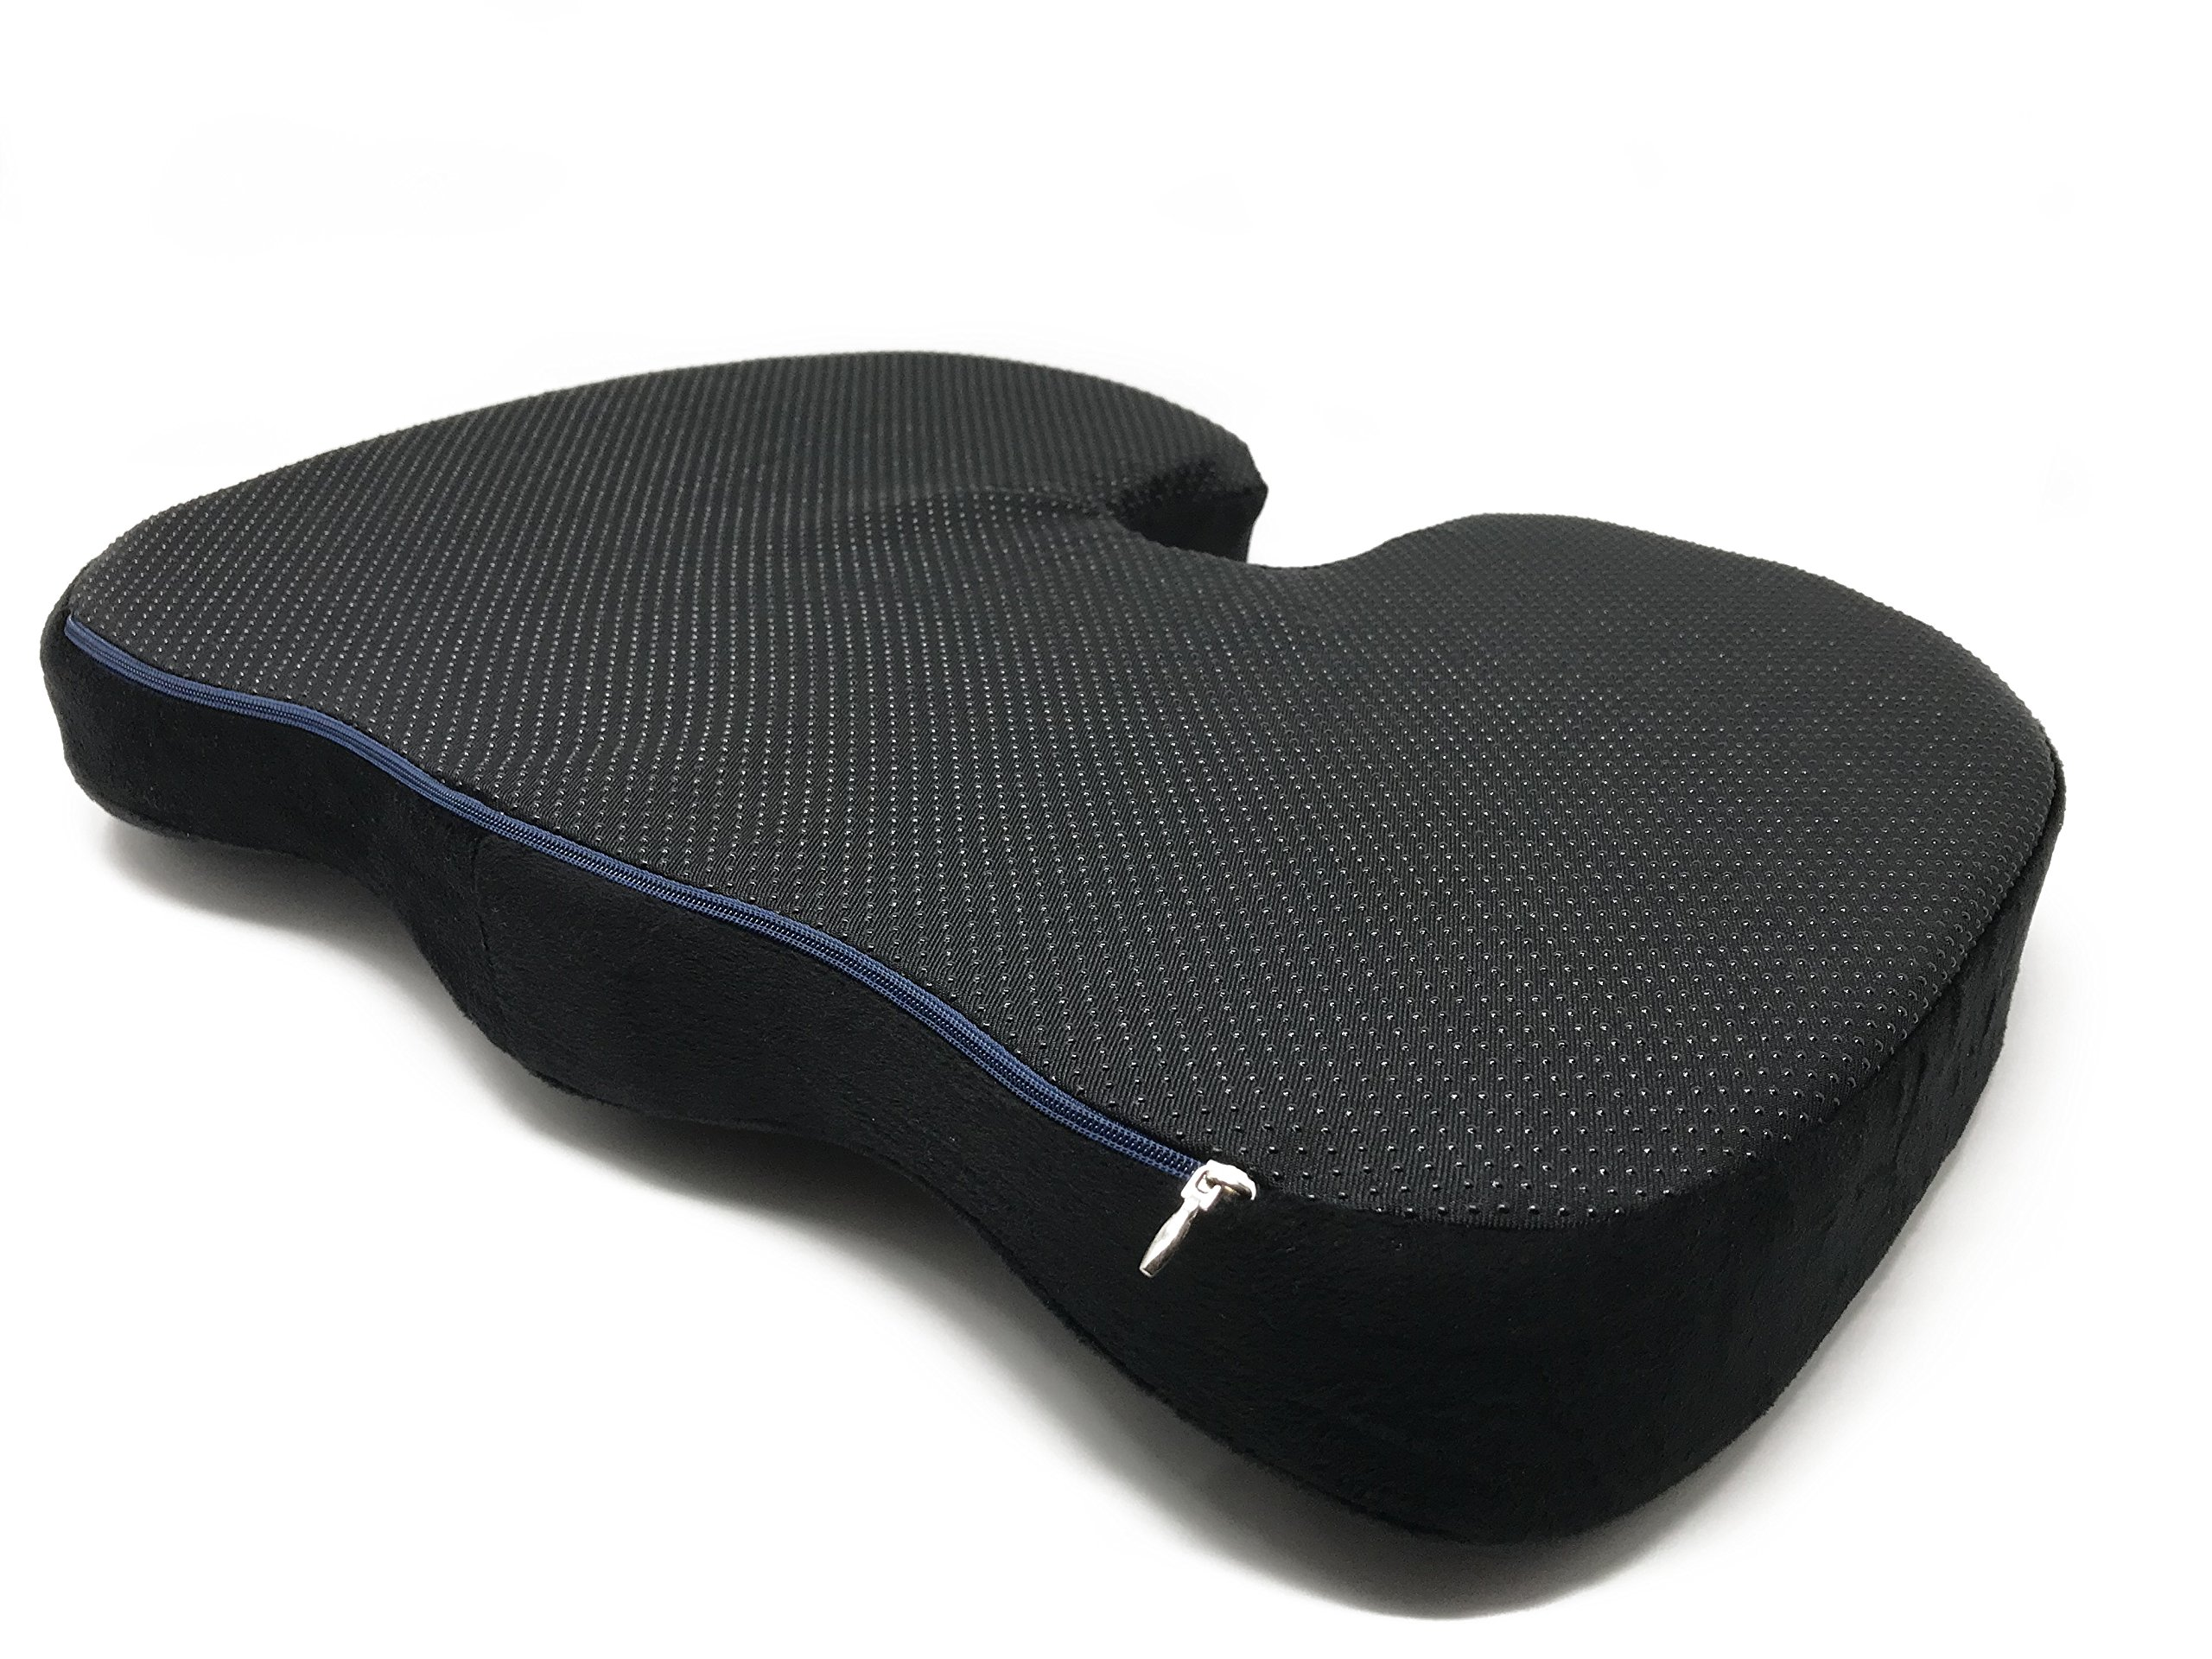 Memory Foam Luxury Seat Cushion, Orthopedic Design for Back Pain Relief, Sciatica and Tailbone Pain